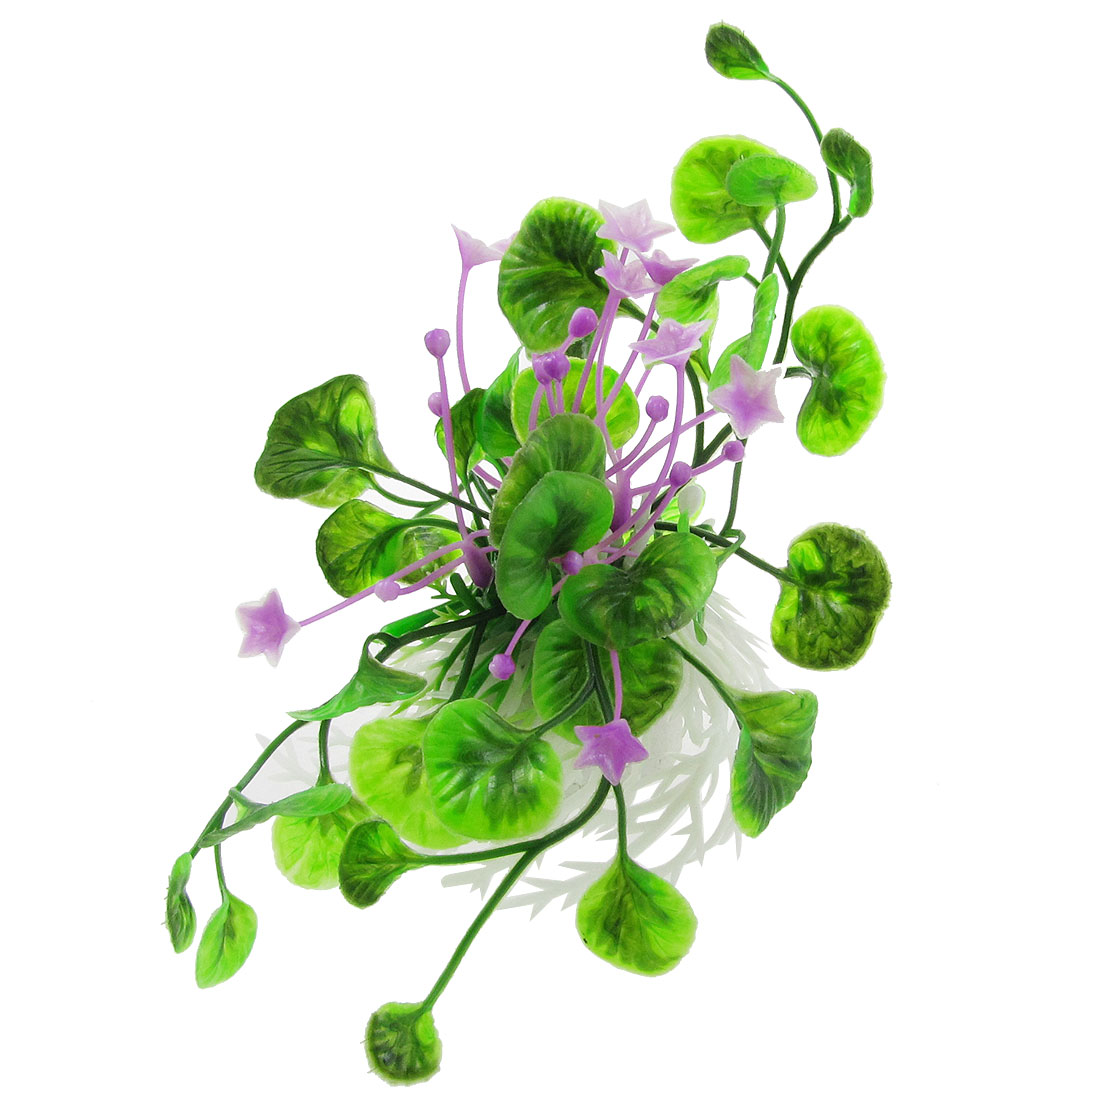 Purple Flowers Green Leaf Plastic Plants Grass Decor for Aquarium Fish Tank